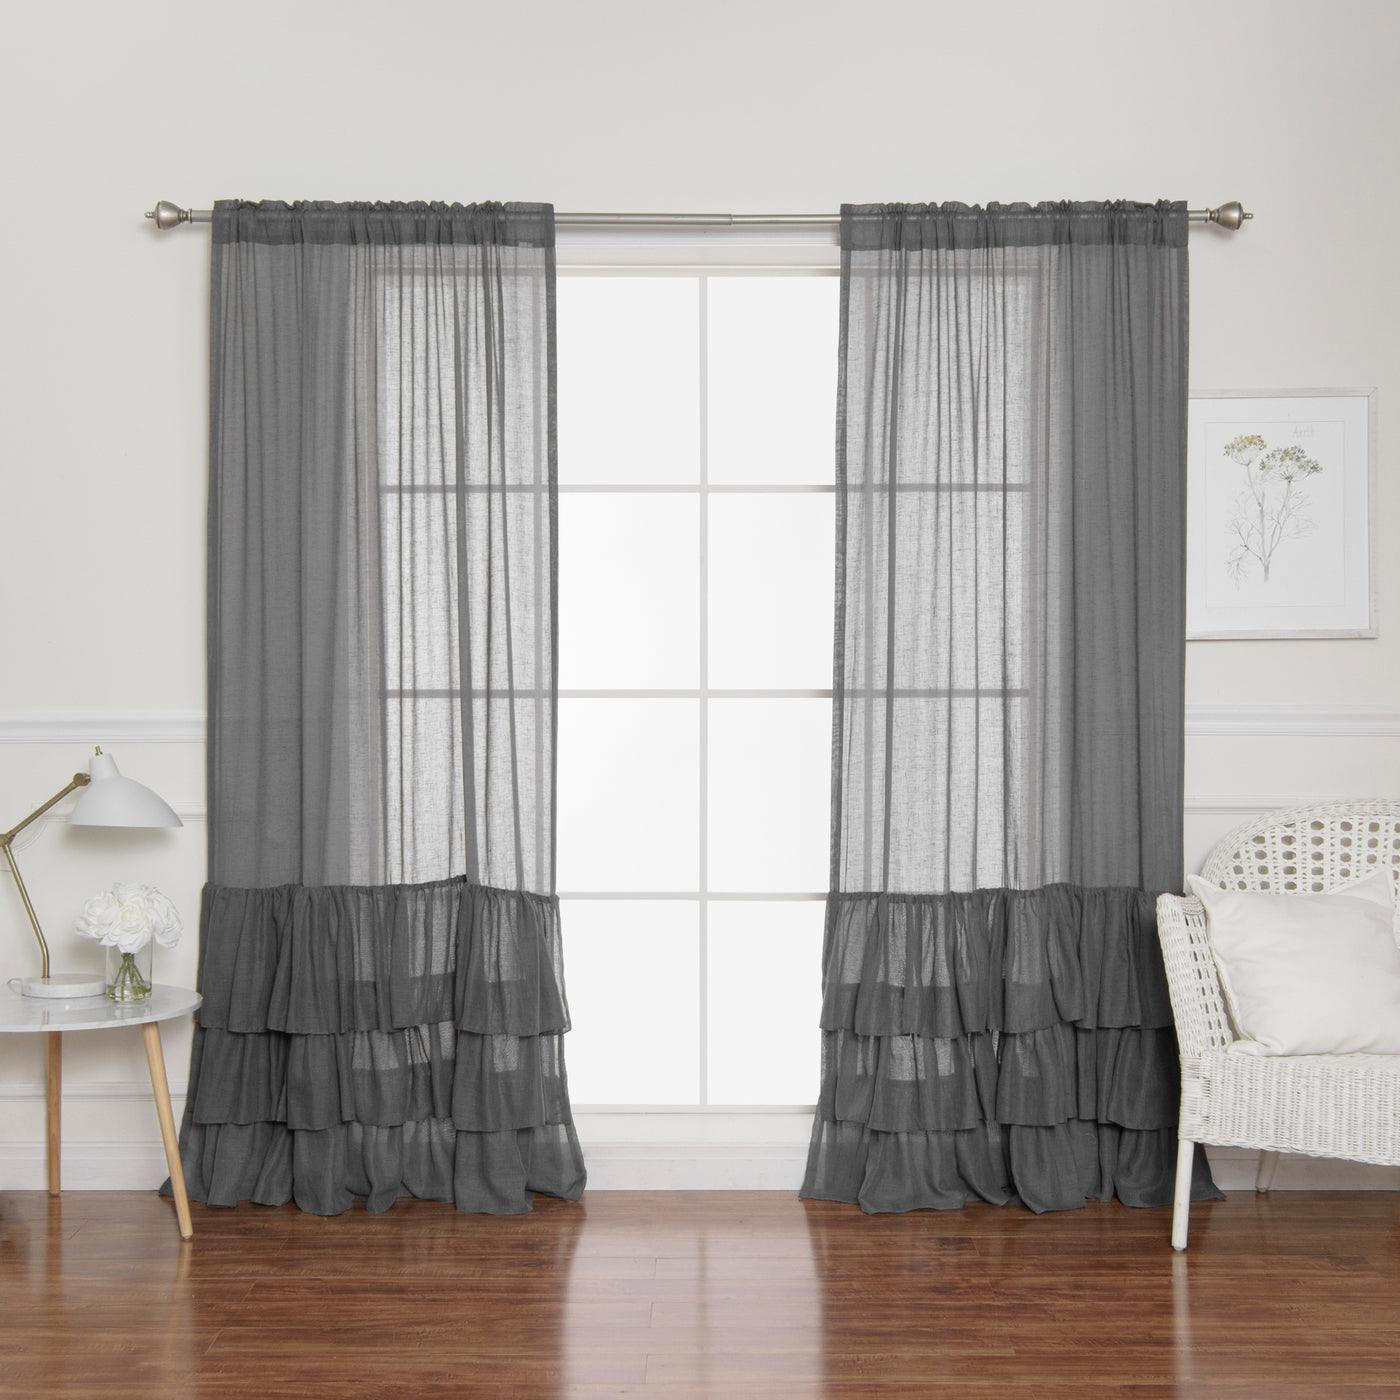 Faux Linen Ruffle Curtains